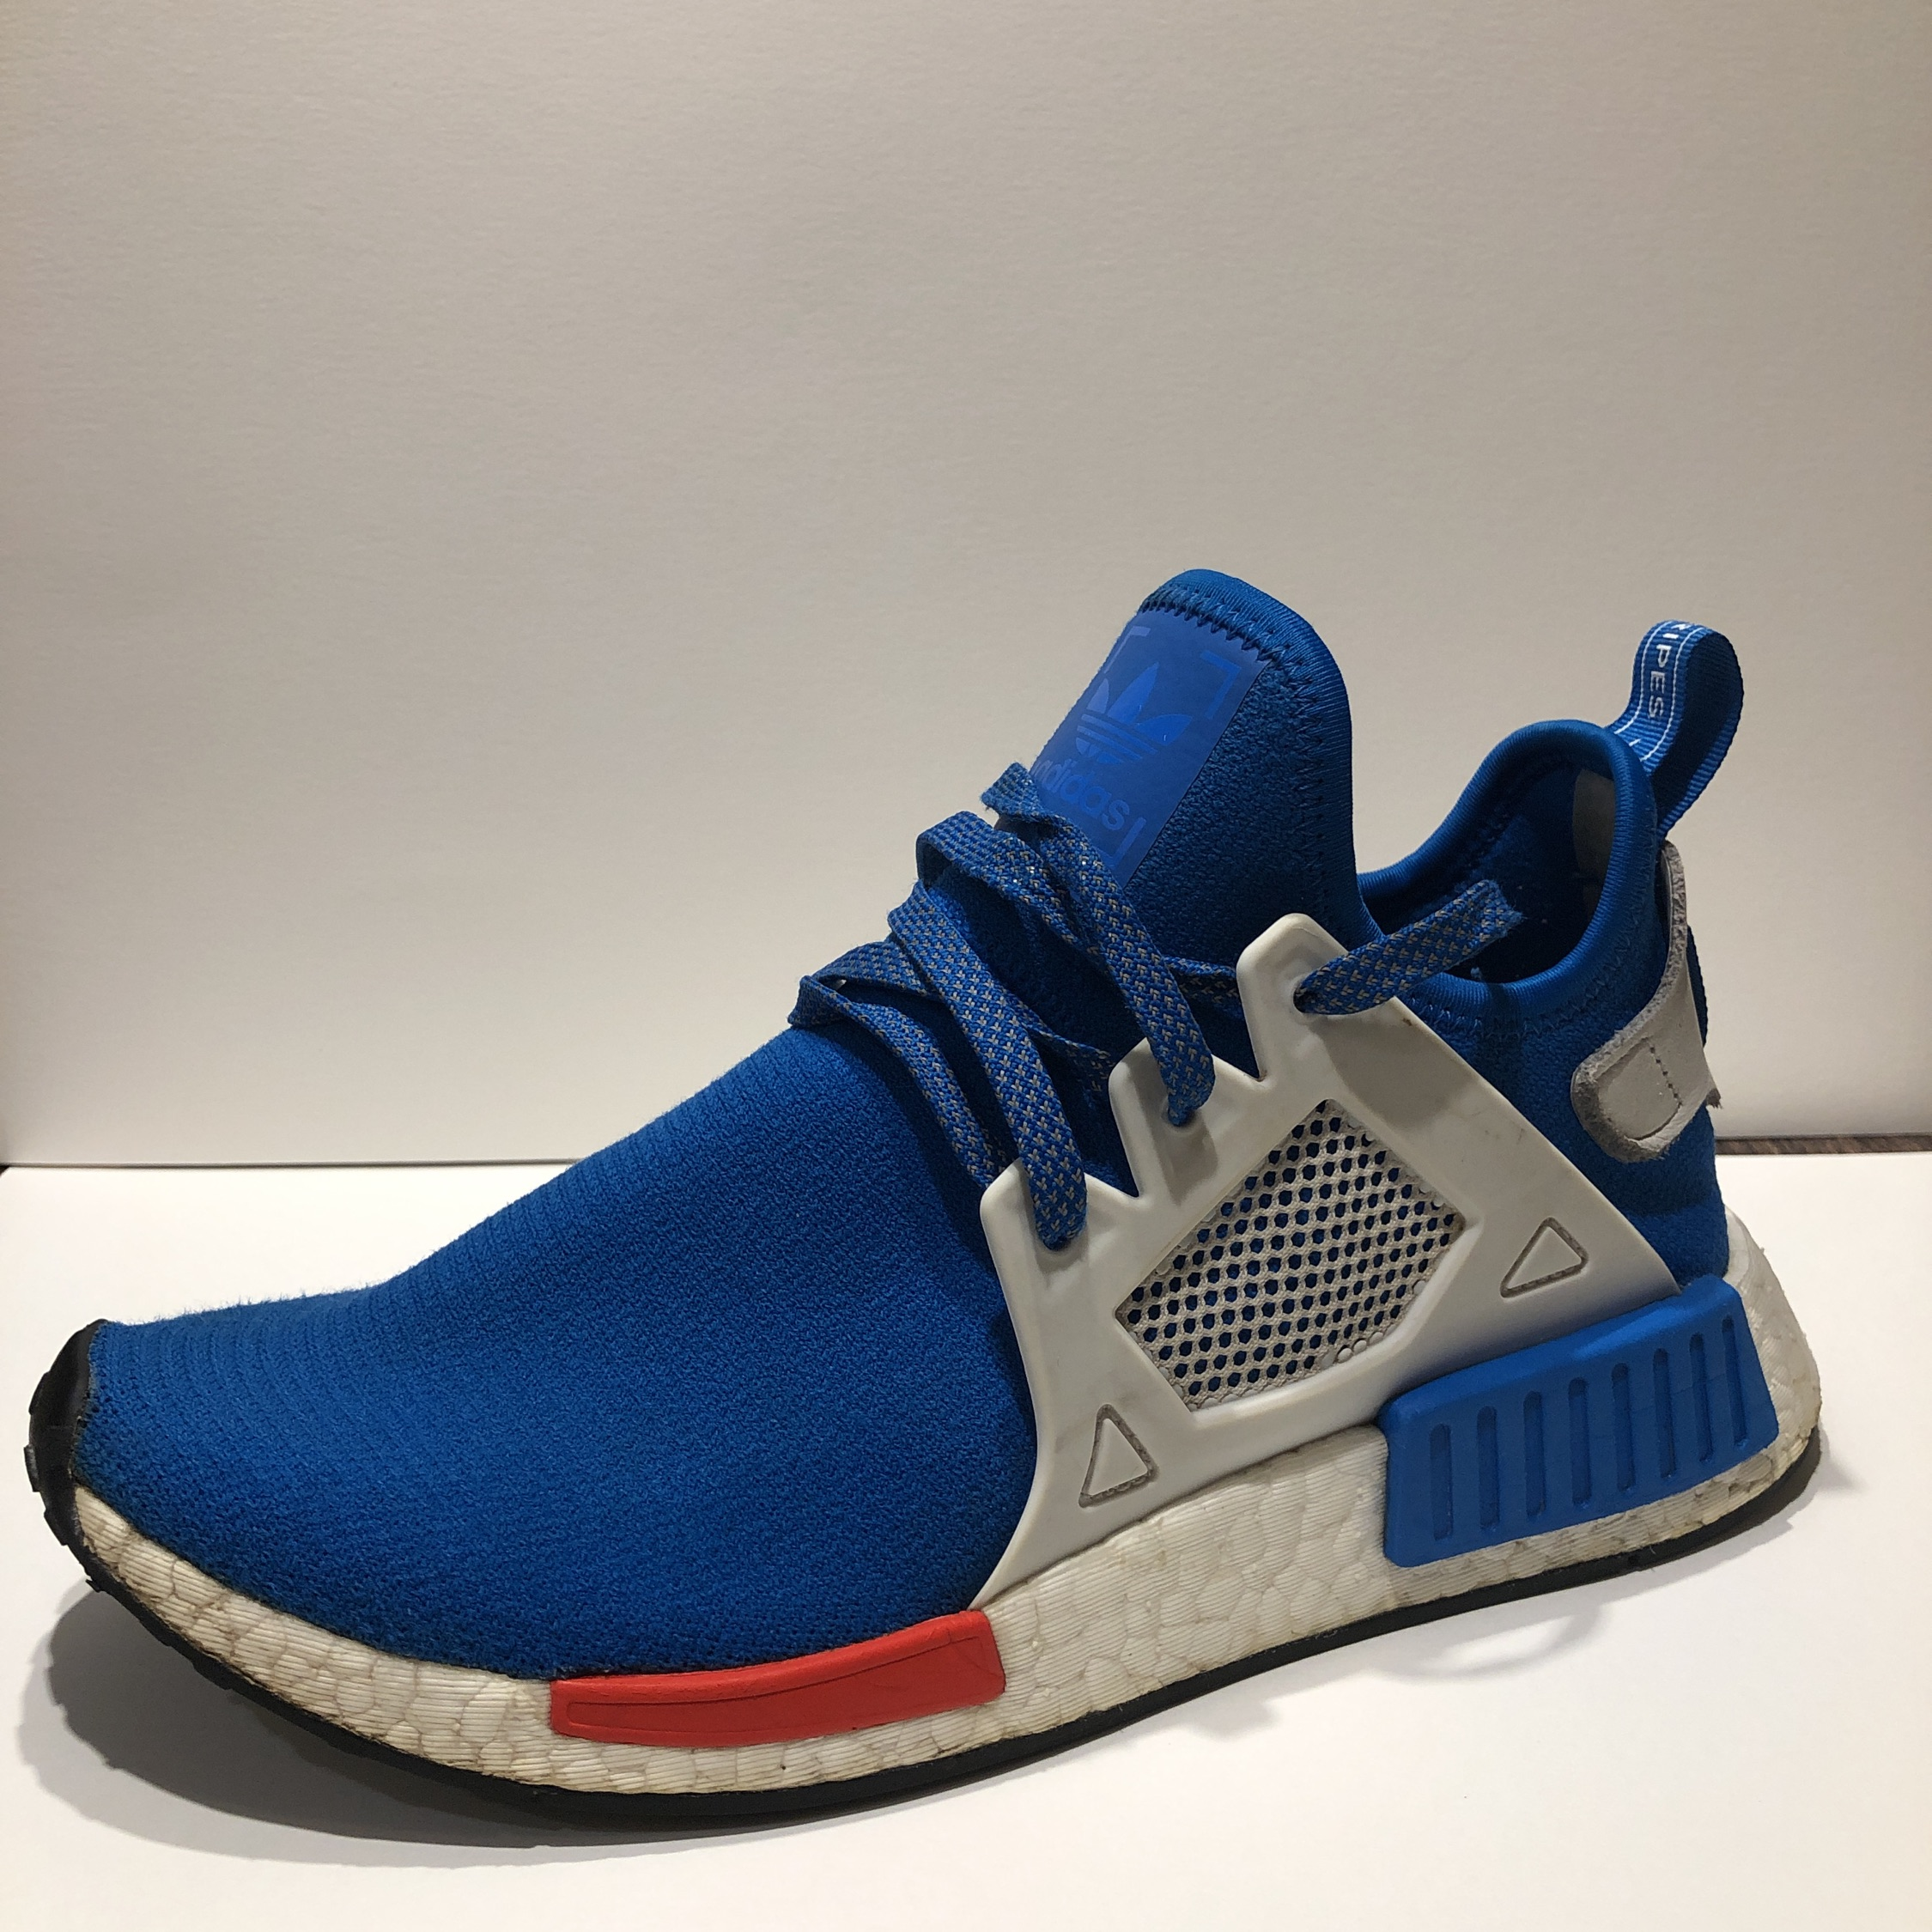 brand new 4884a 9f32b Adidas Nmd Xr1 Blue White Red